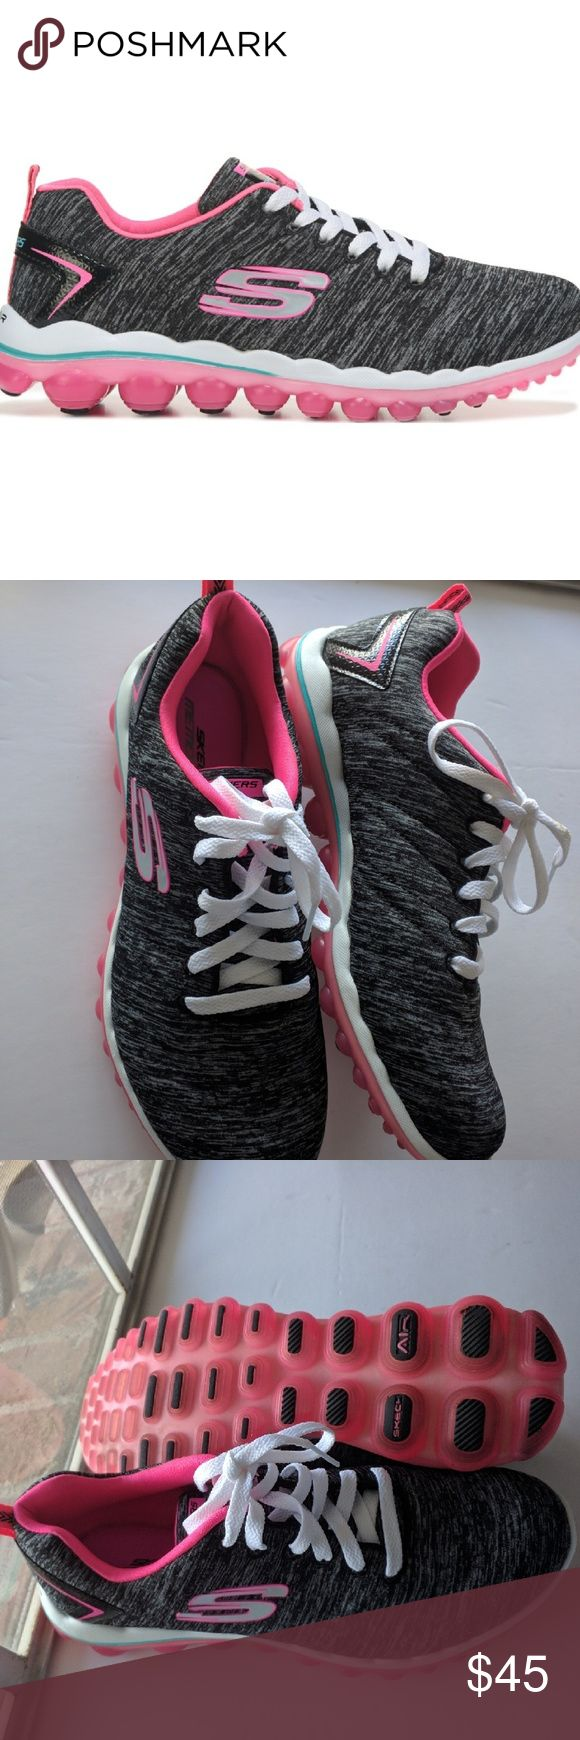 Like New Sketcher Women's Skech-AIR 2.0 Size 8 Only used once. Look brand new. Very comfortable shoes. Skechers Shoes Sneakers